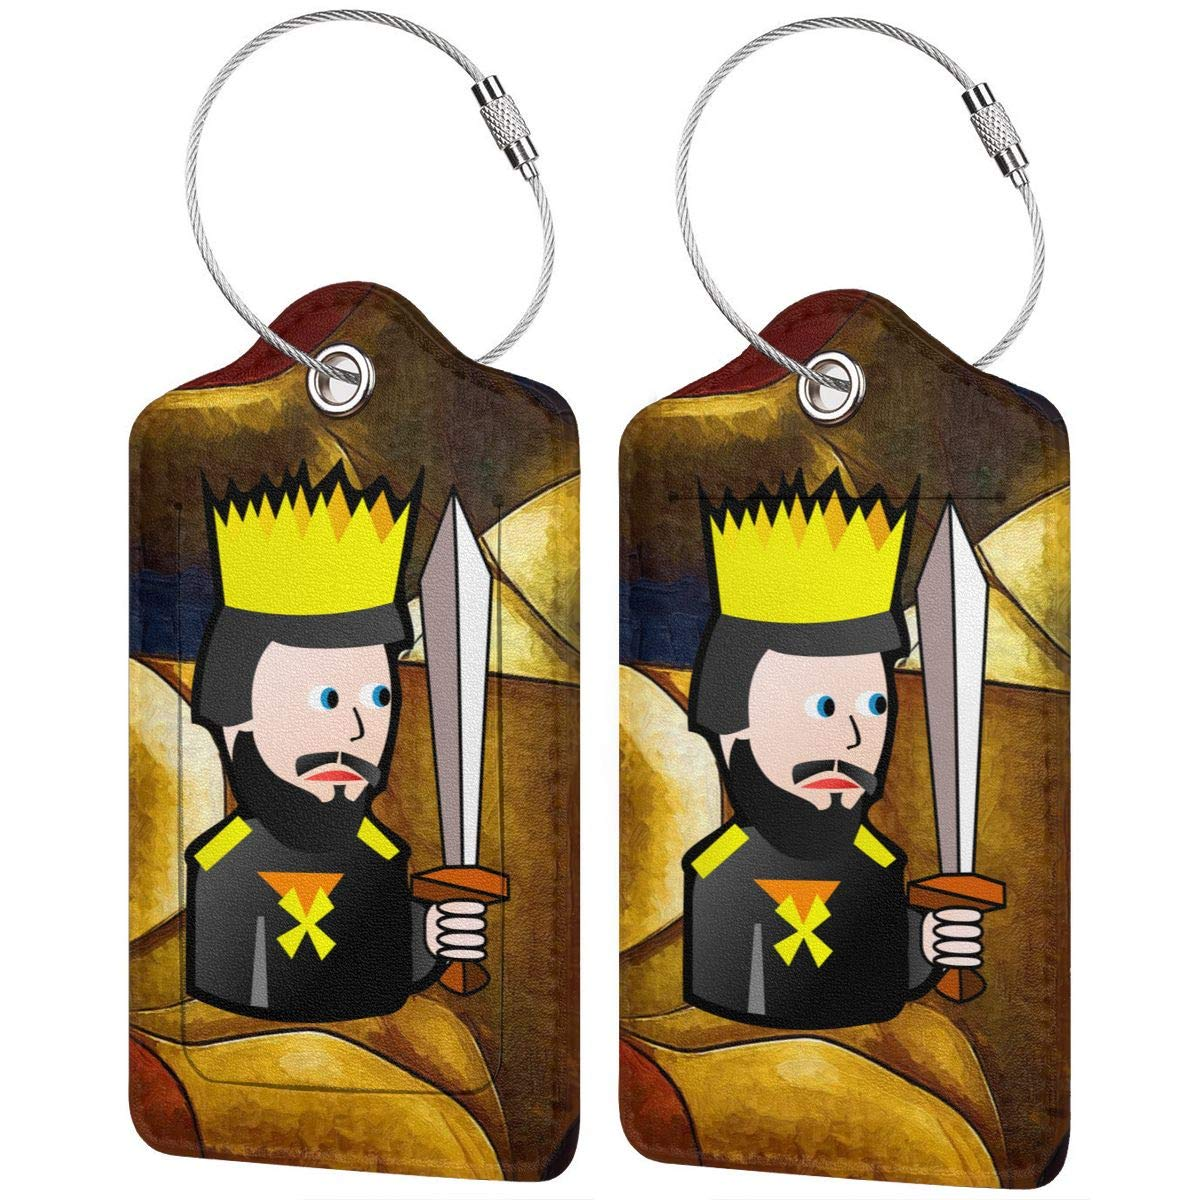 King Of Spades Travel Luggage Tags With Full Privacy Cover Leather Case And Stainless Steel Loop